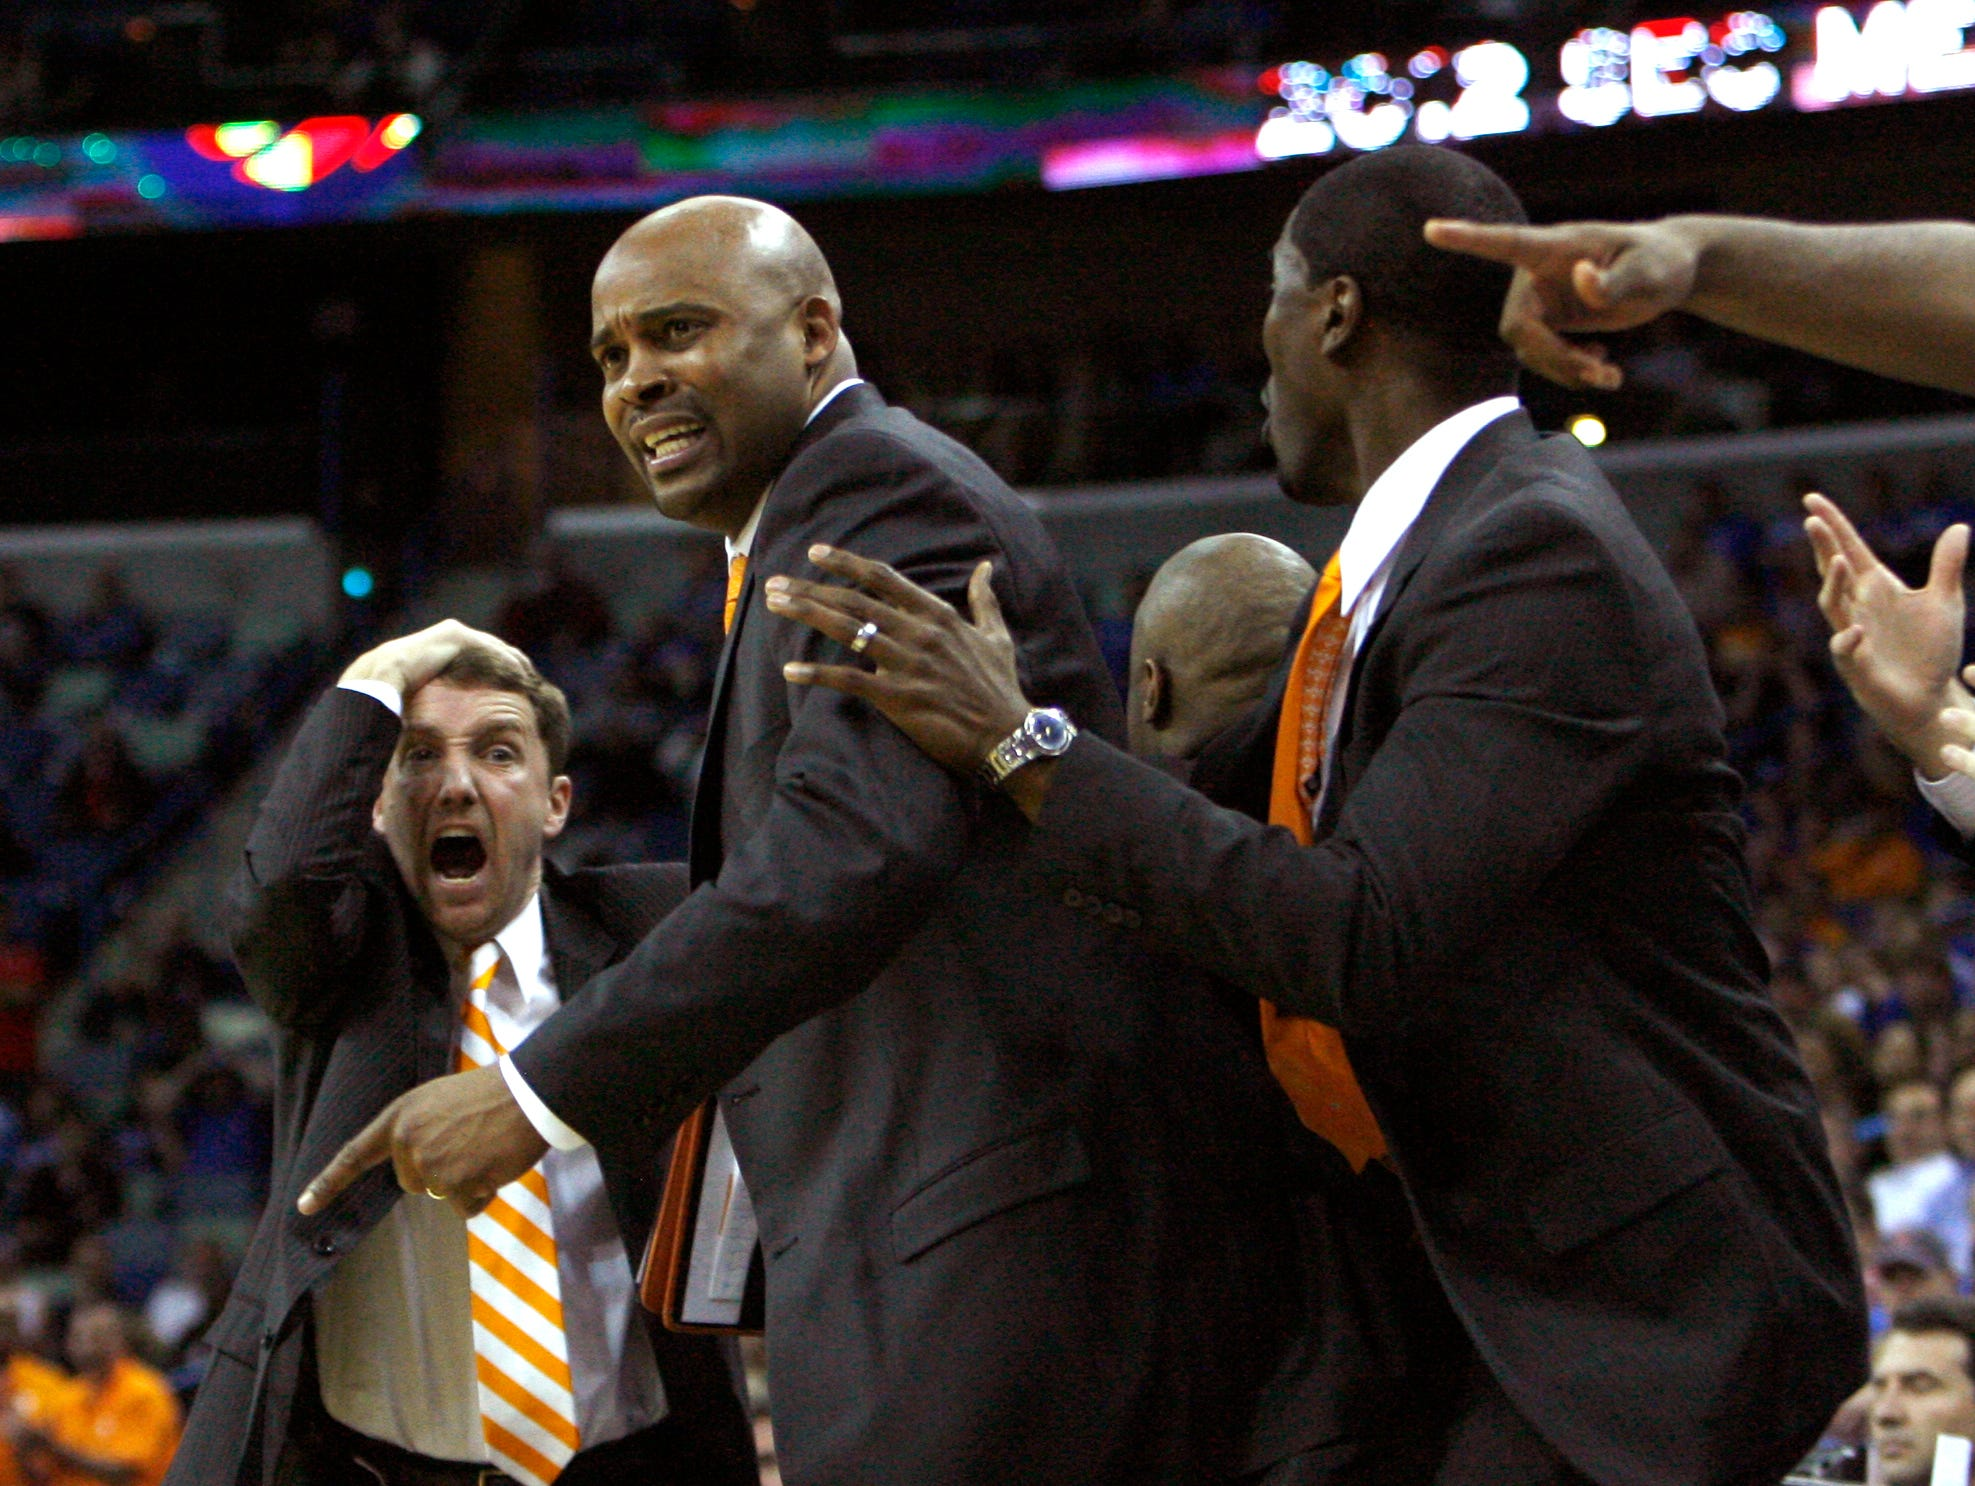 Tennessee head coach Cuonzo Martin, center, shows frustration after Ole Miss was given possession of the ball when it was knocked out of bounds during overtime during the SEC Men's Basketball Tournament at the New Orleans Arena in New Orleans, La., Friday, March 9, 2012.